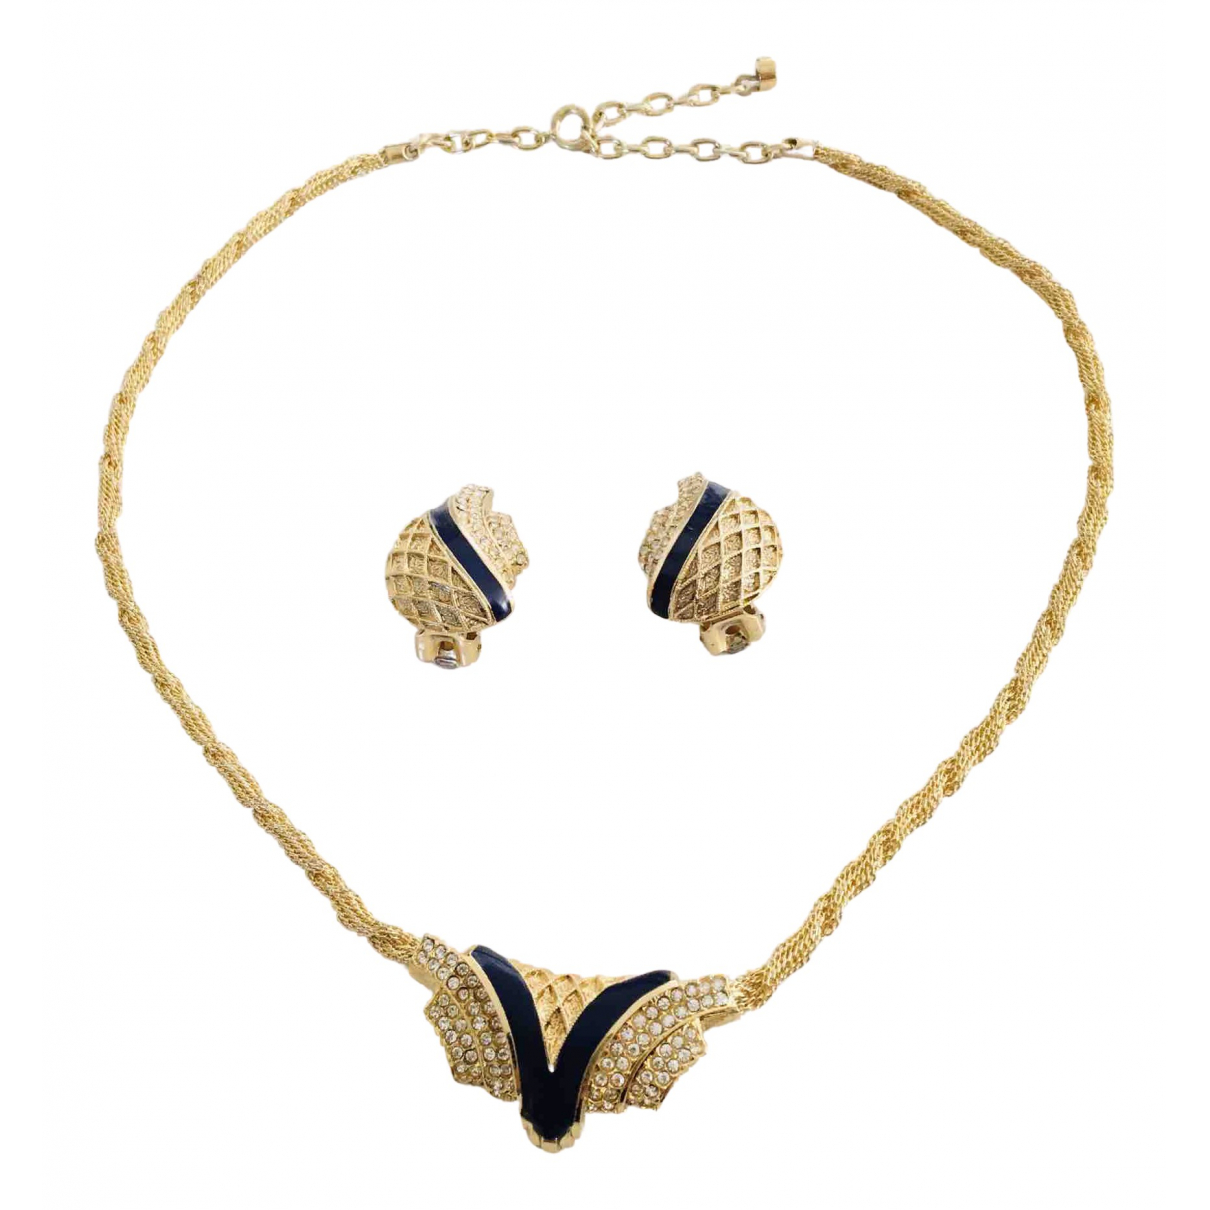 Balenciaga \N Schmuck-set in  Gold Metall